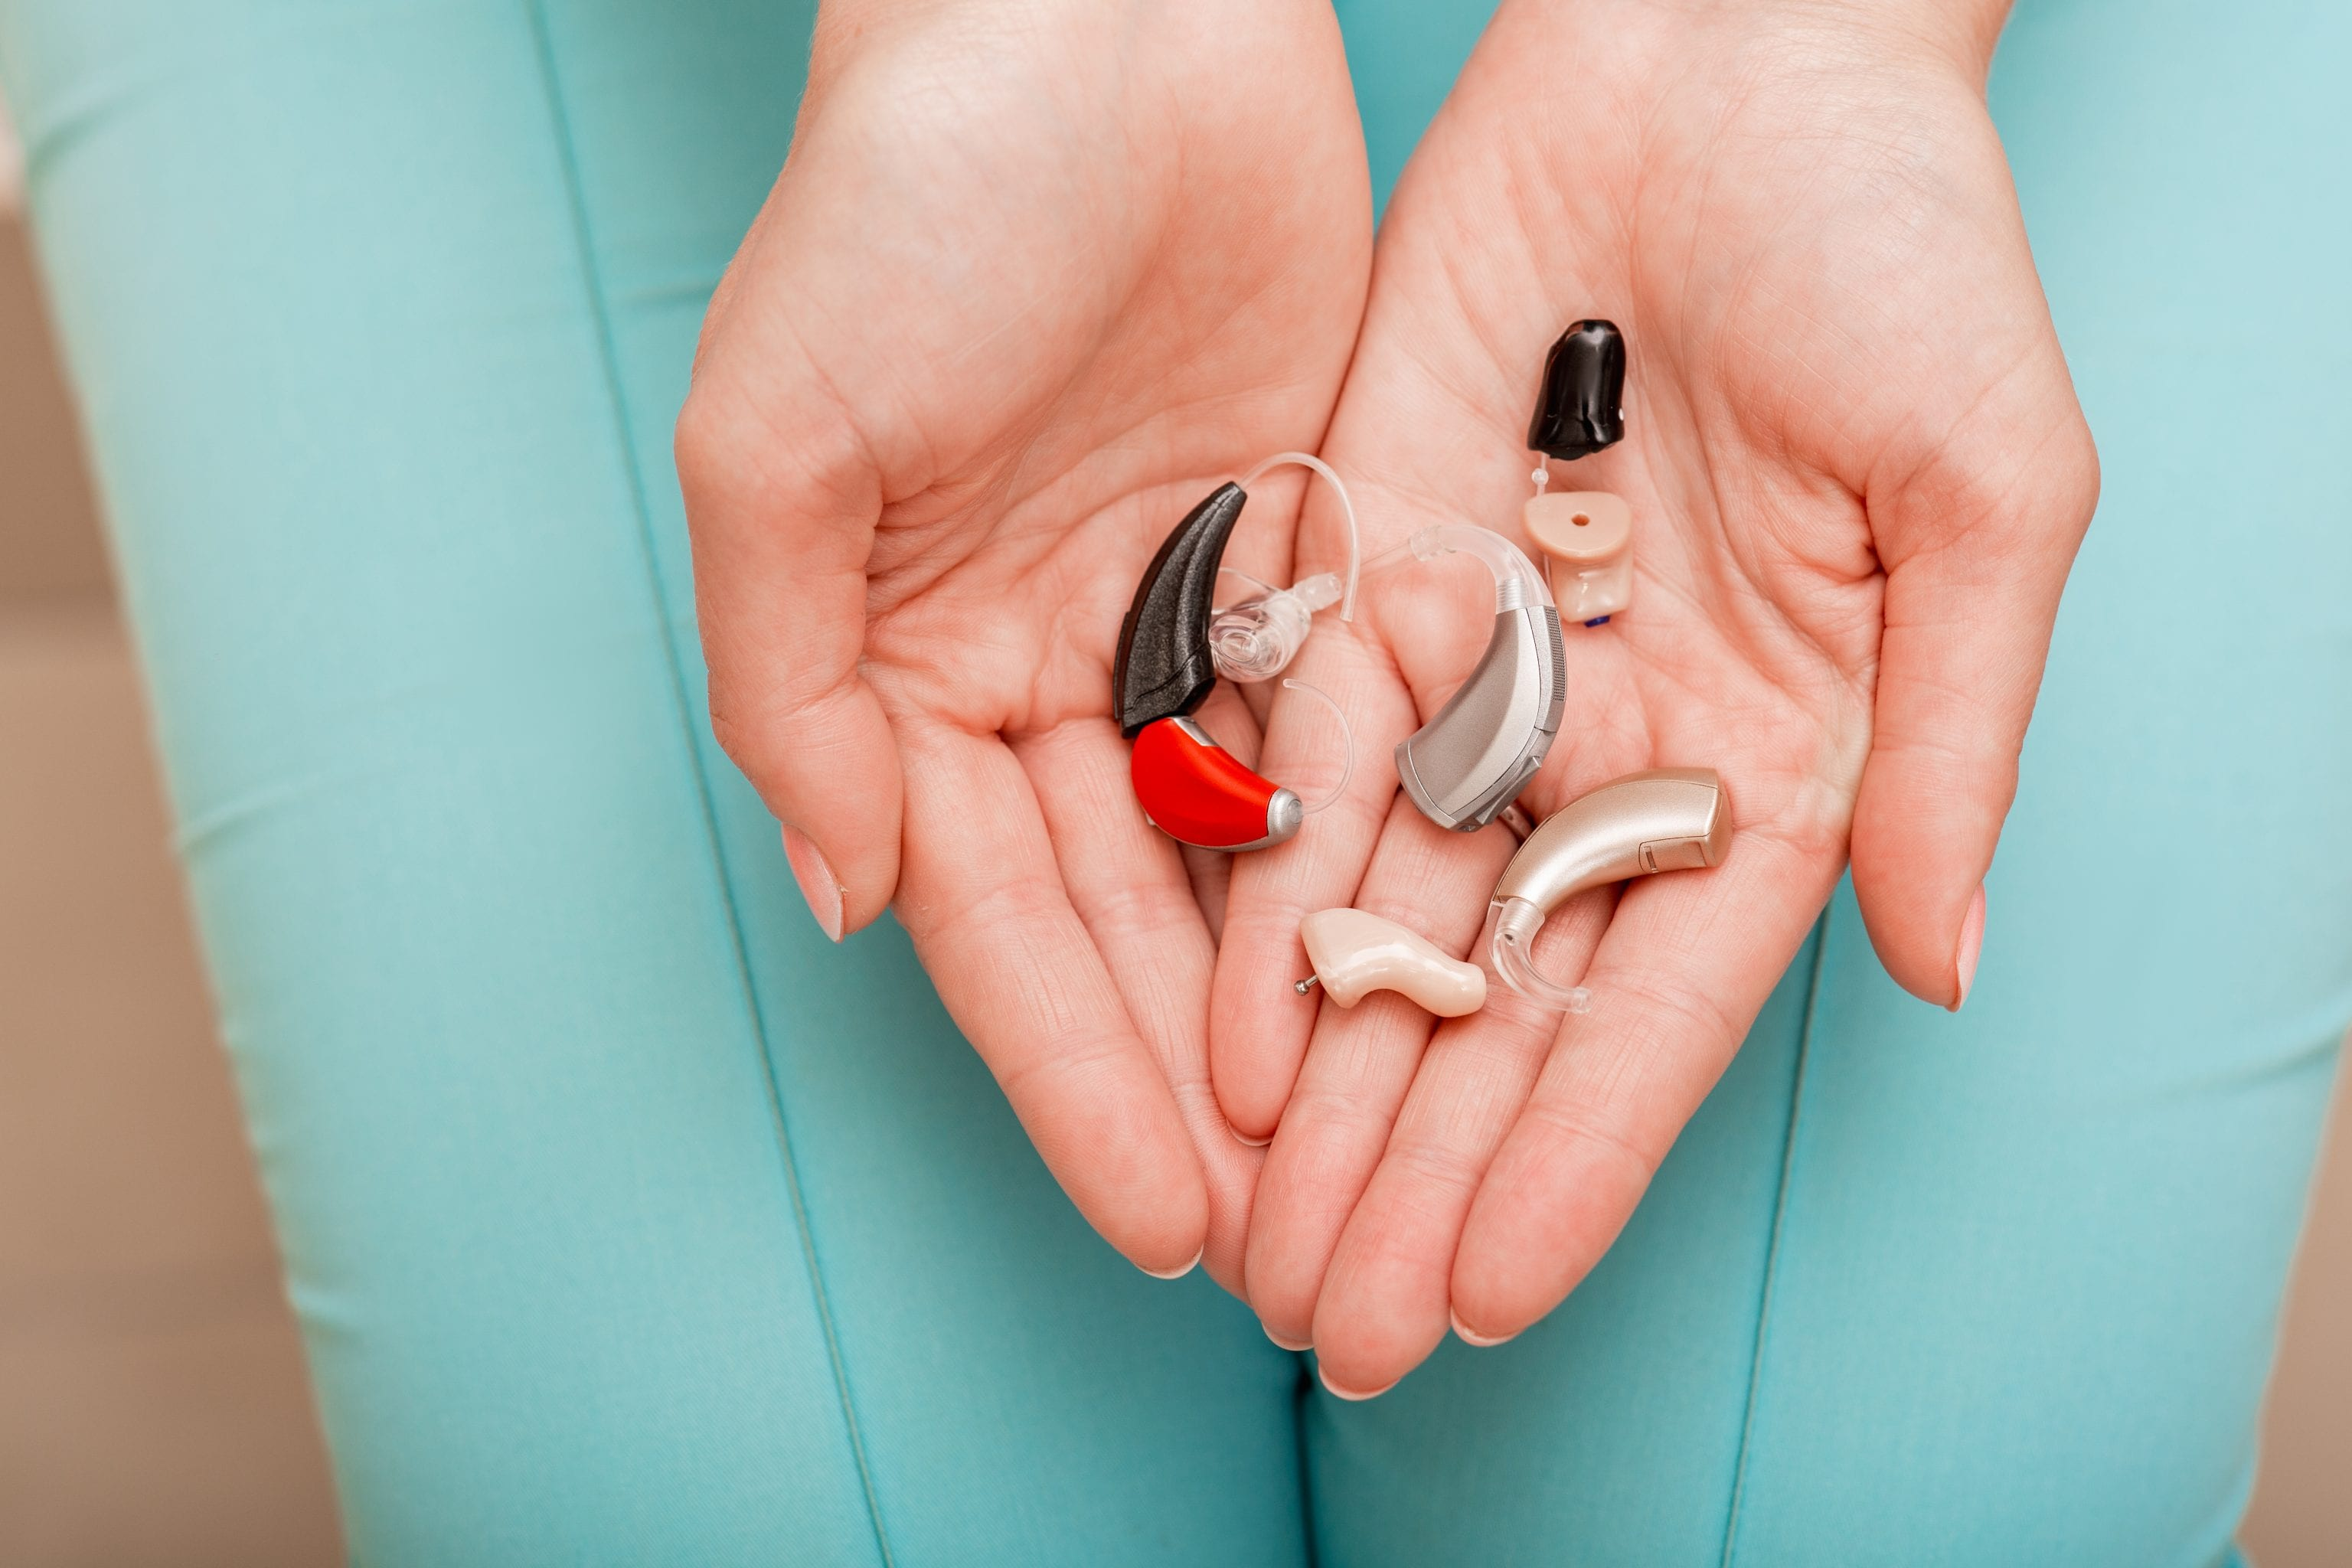 two hands holding pile of hearing aid devices